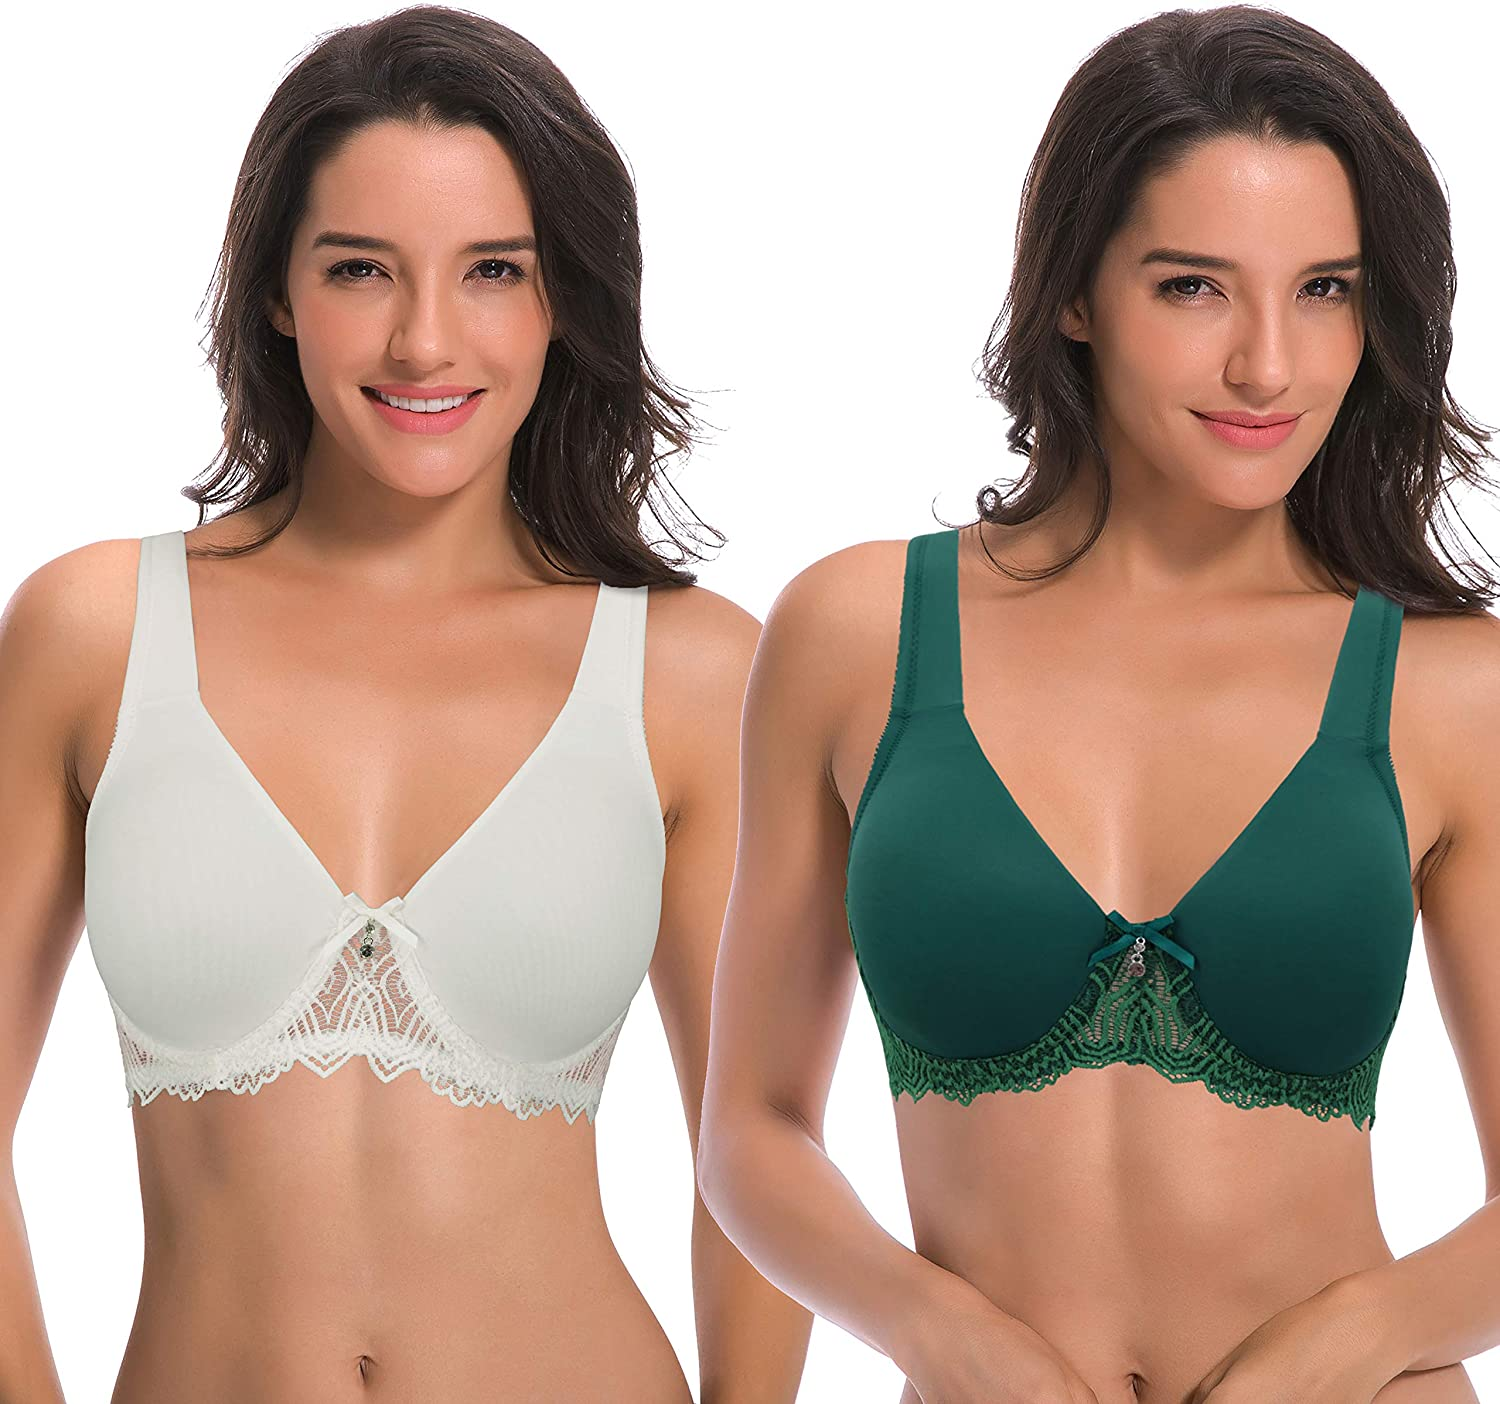 Curve 新着 Muse Women's Plus Size Unlined Cus Lace with Bra Underwire 公式ショップ